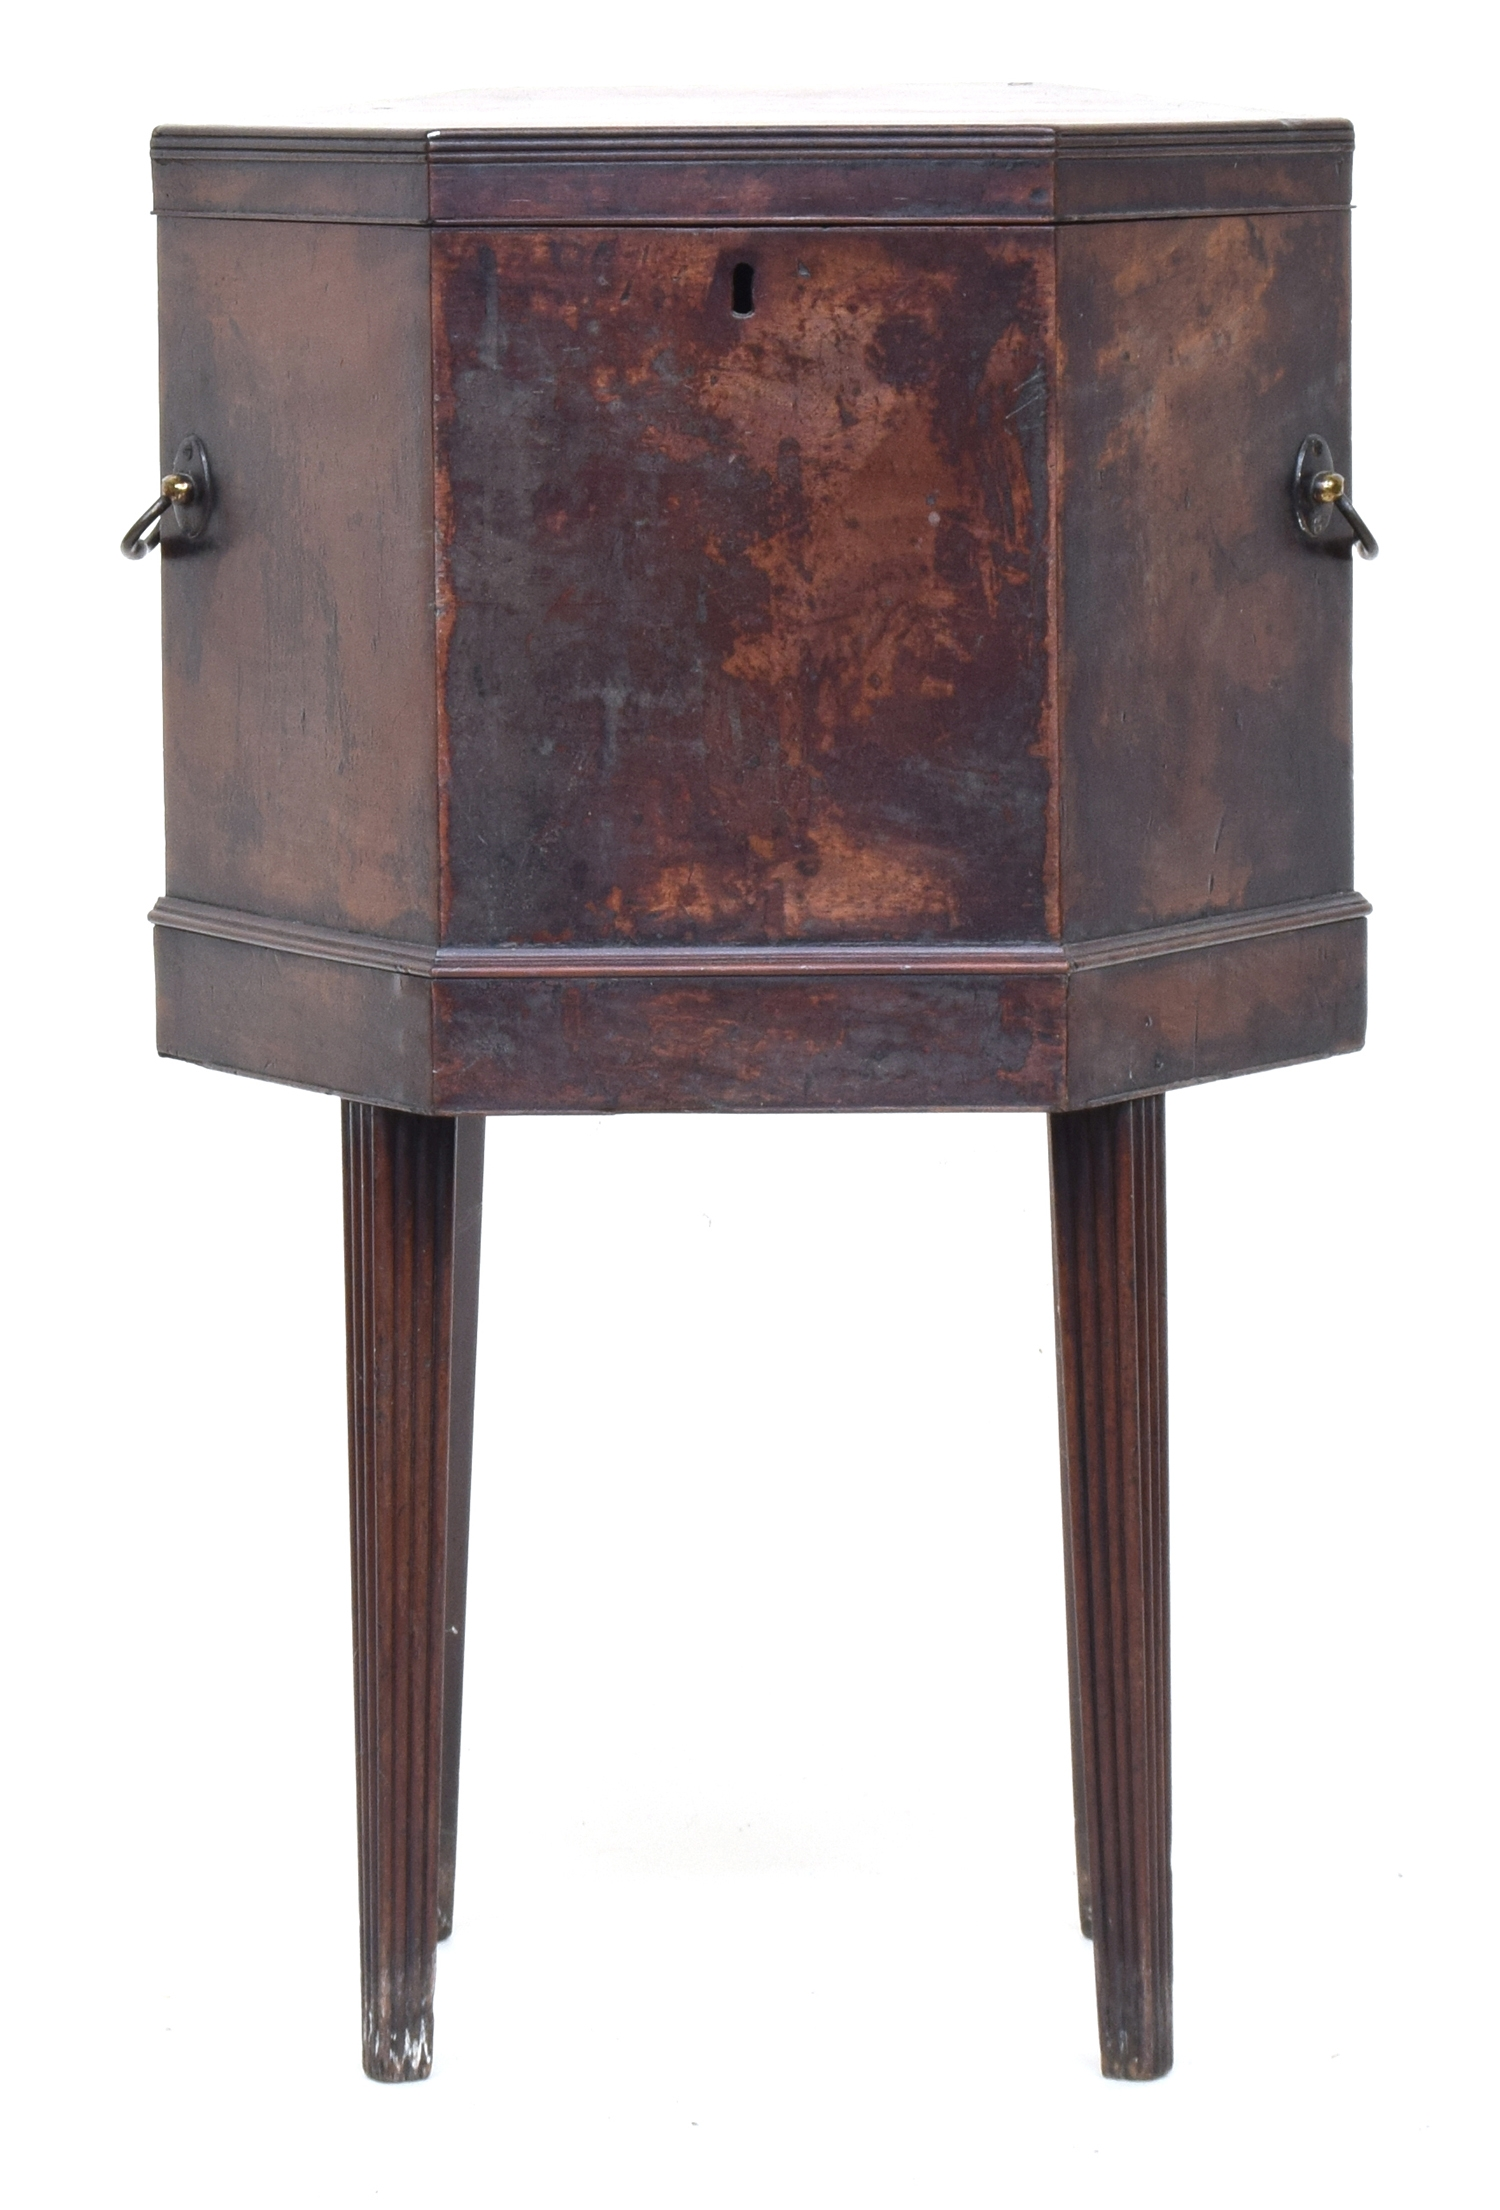 A George III mahogany hexagonal cellarette, twin brass handles, on moulded tapered legs